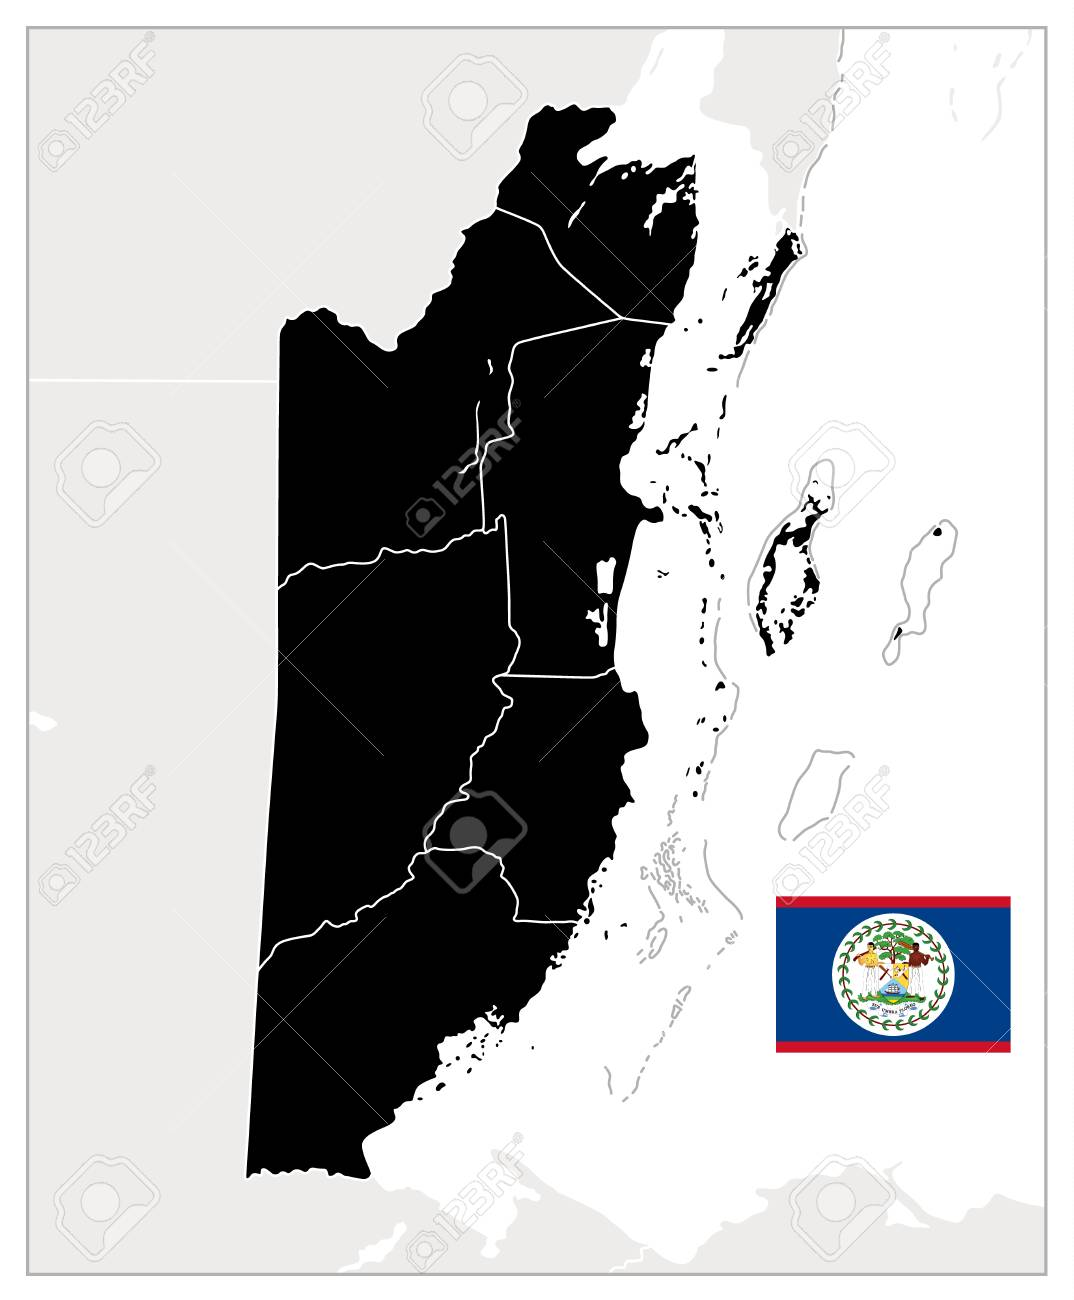 Belize Blank Black Map. Detailed Map Of Belize. No Text. Vector ...